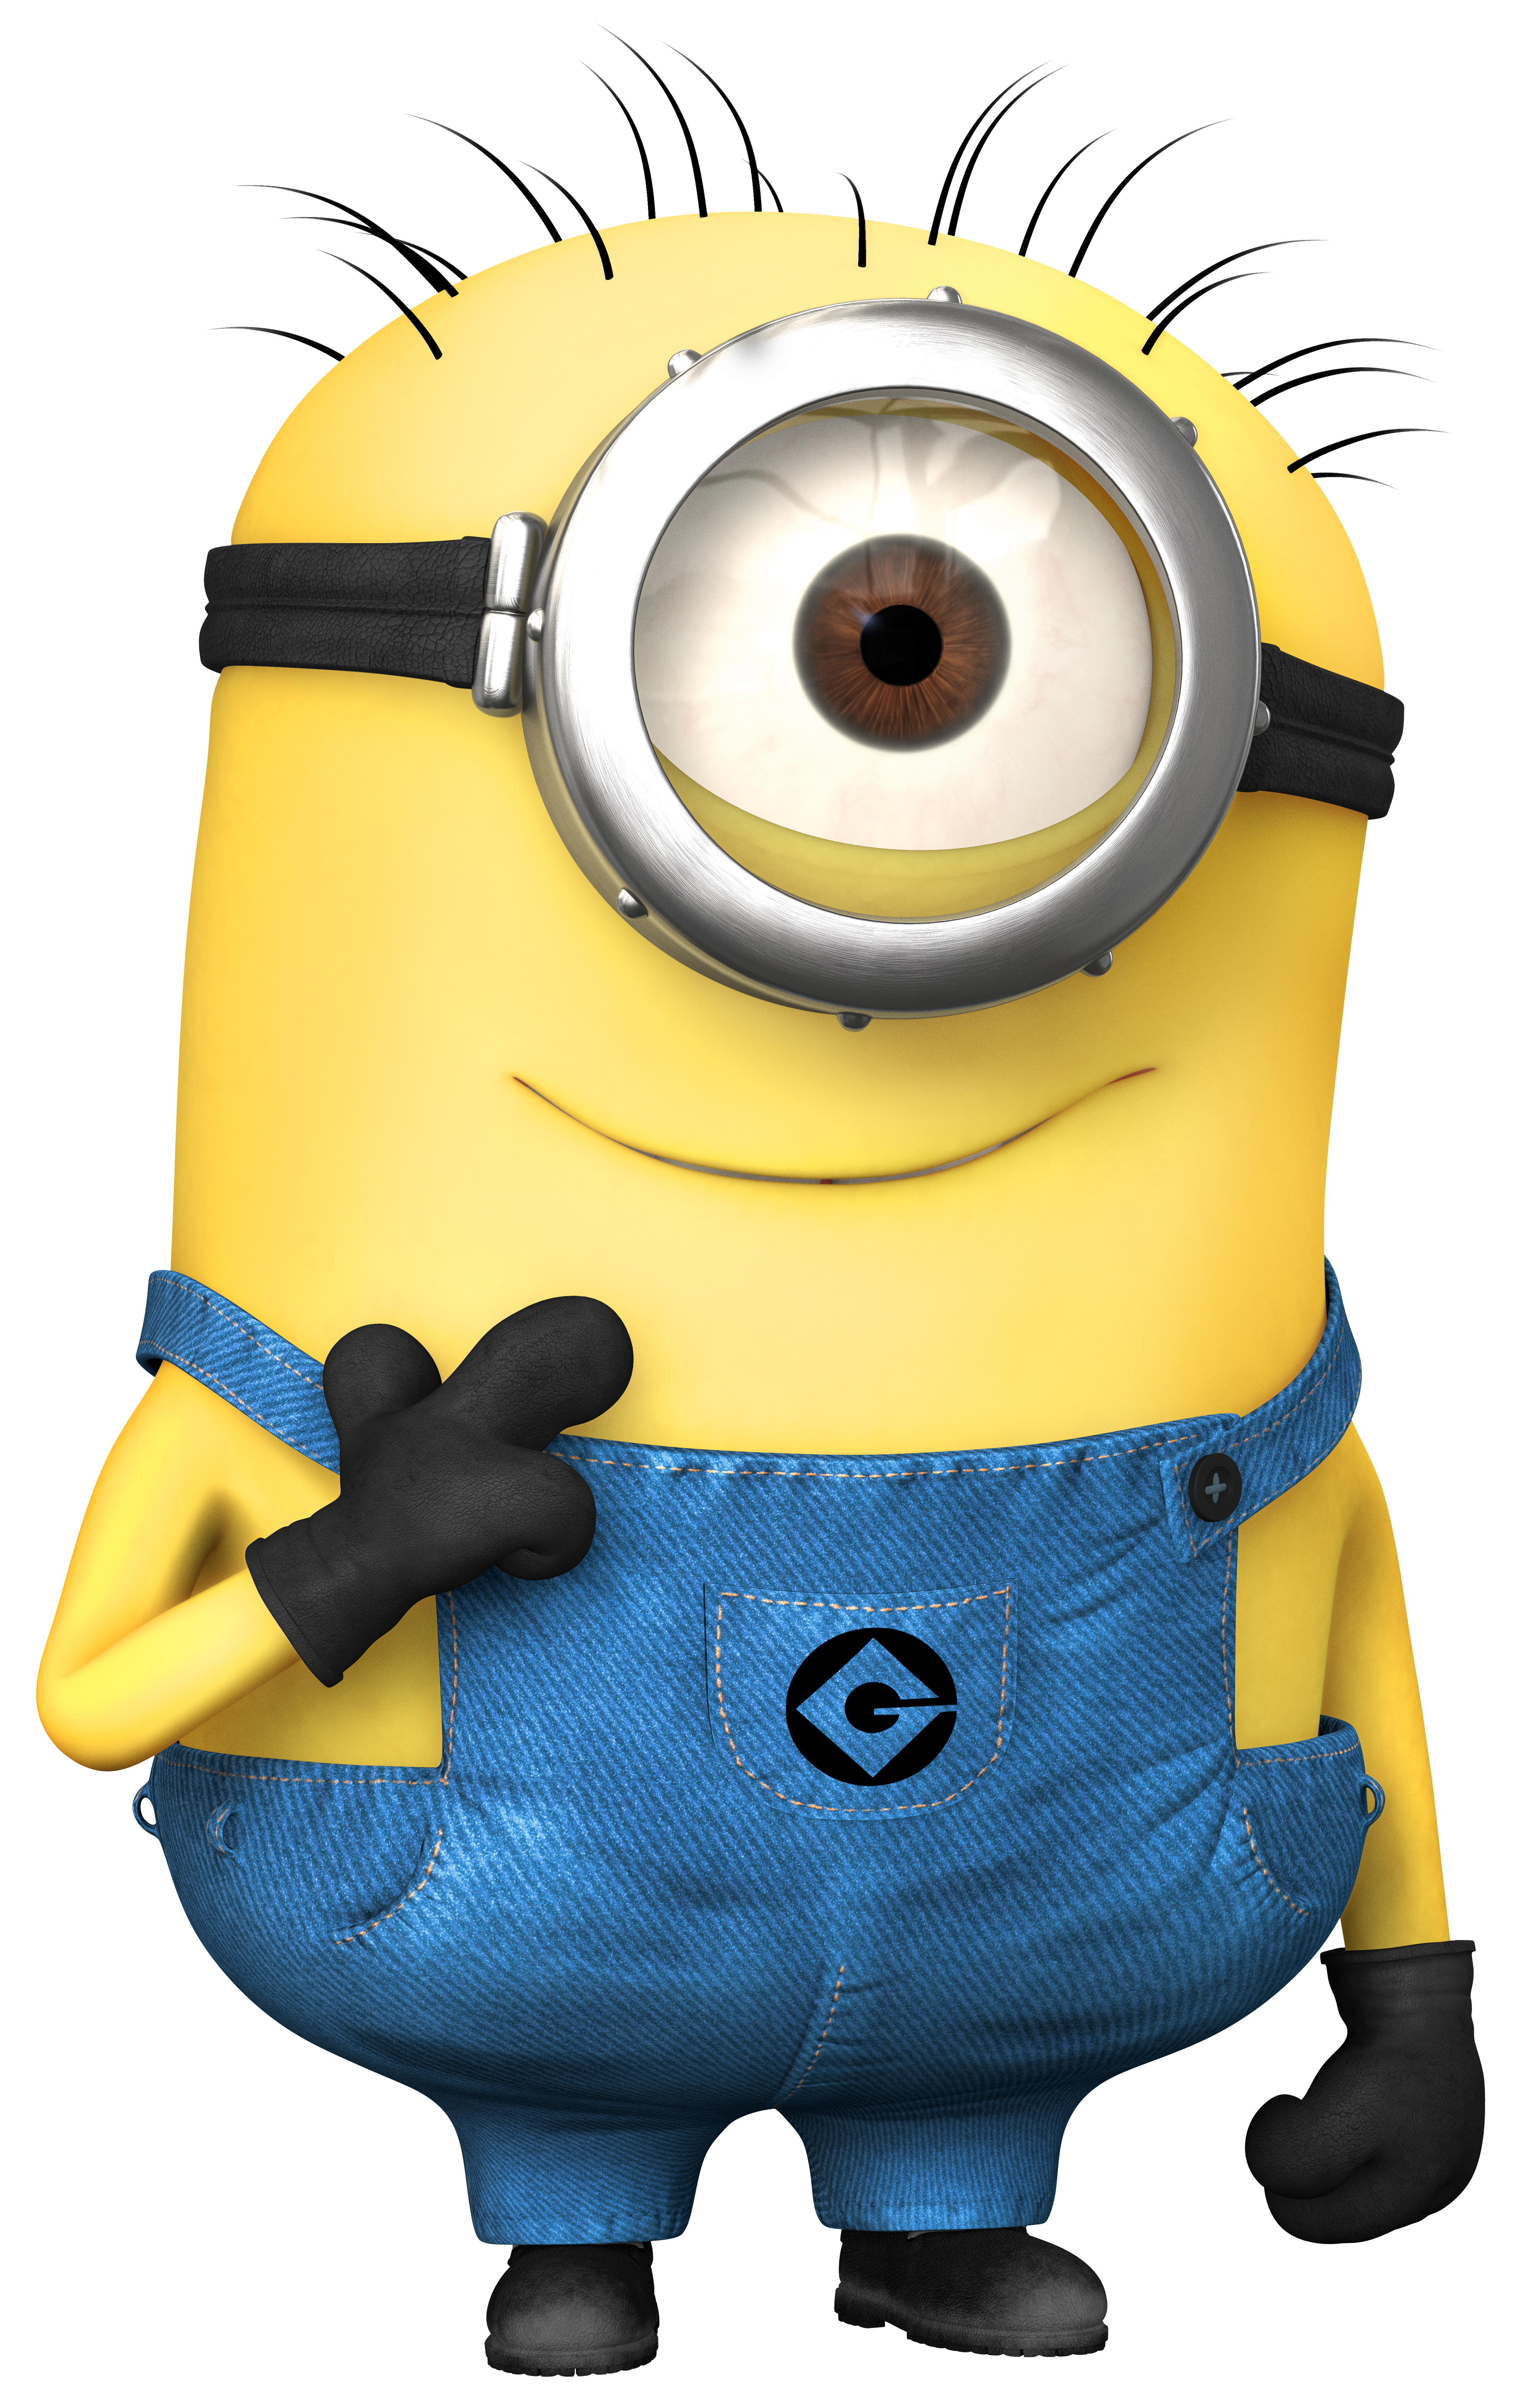 Minion valentine images clipart images gallery for free.